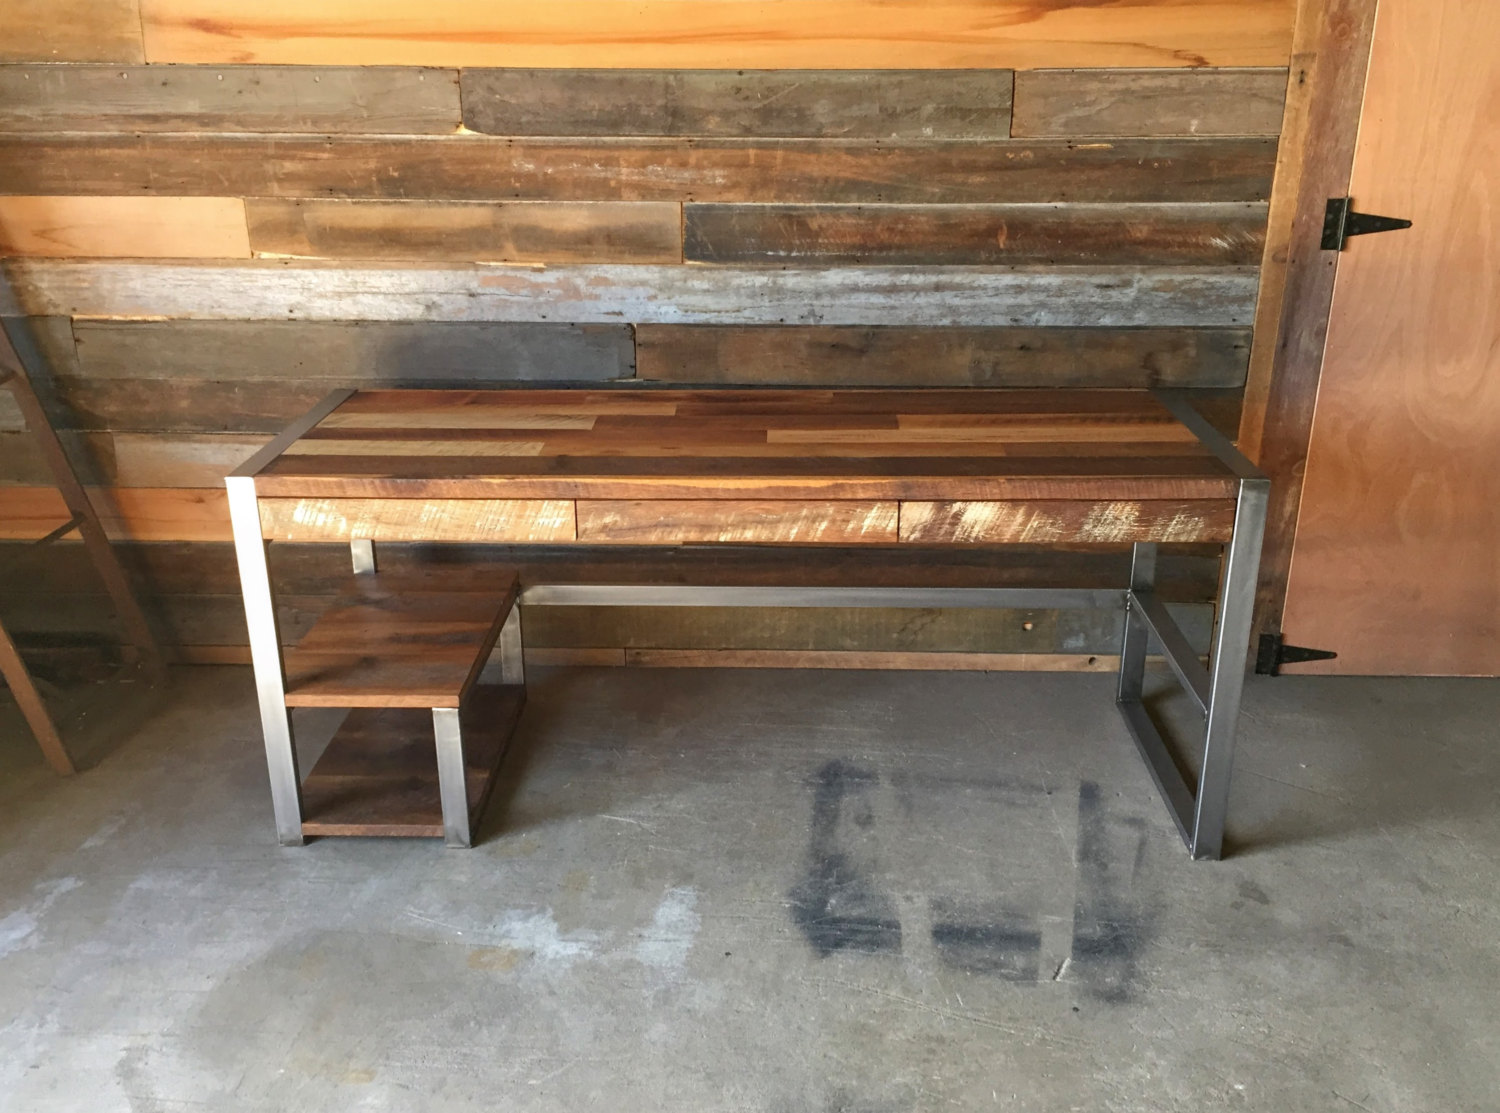 industrial style office desk. Industrial Reclaimed Wood Storage Desk Style Office